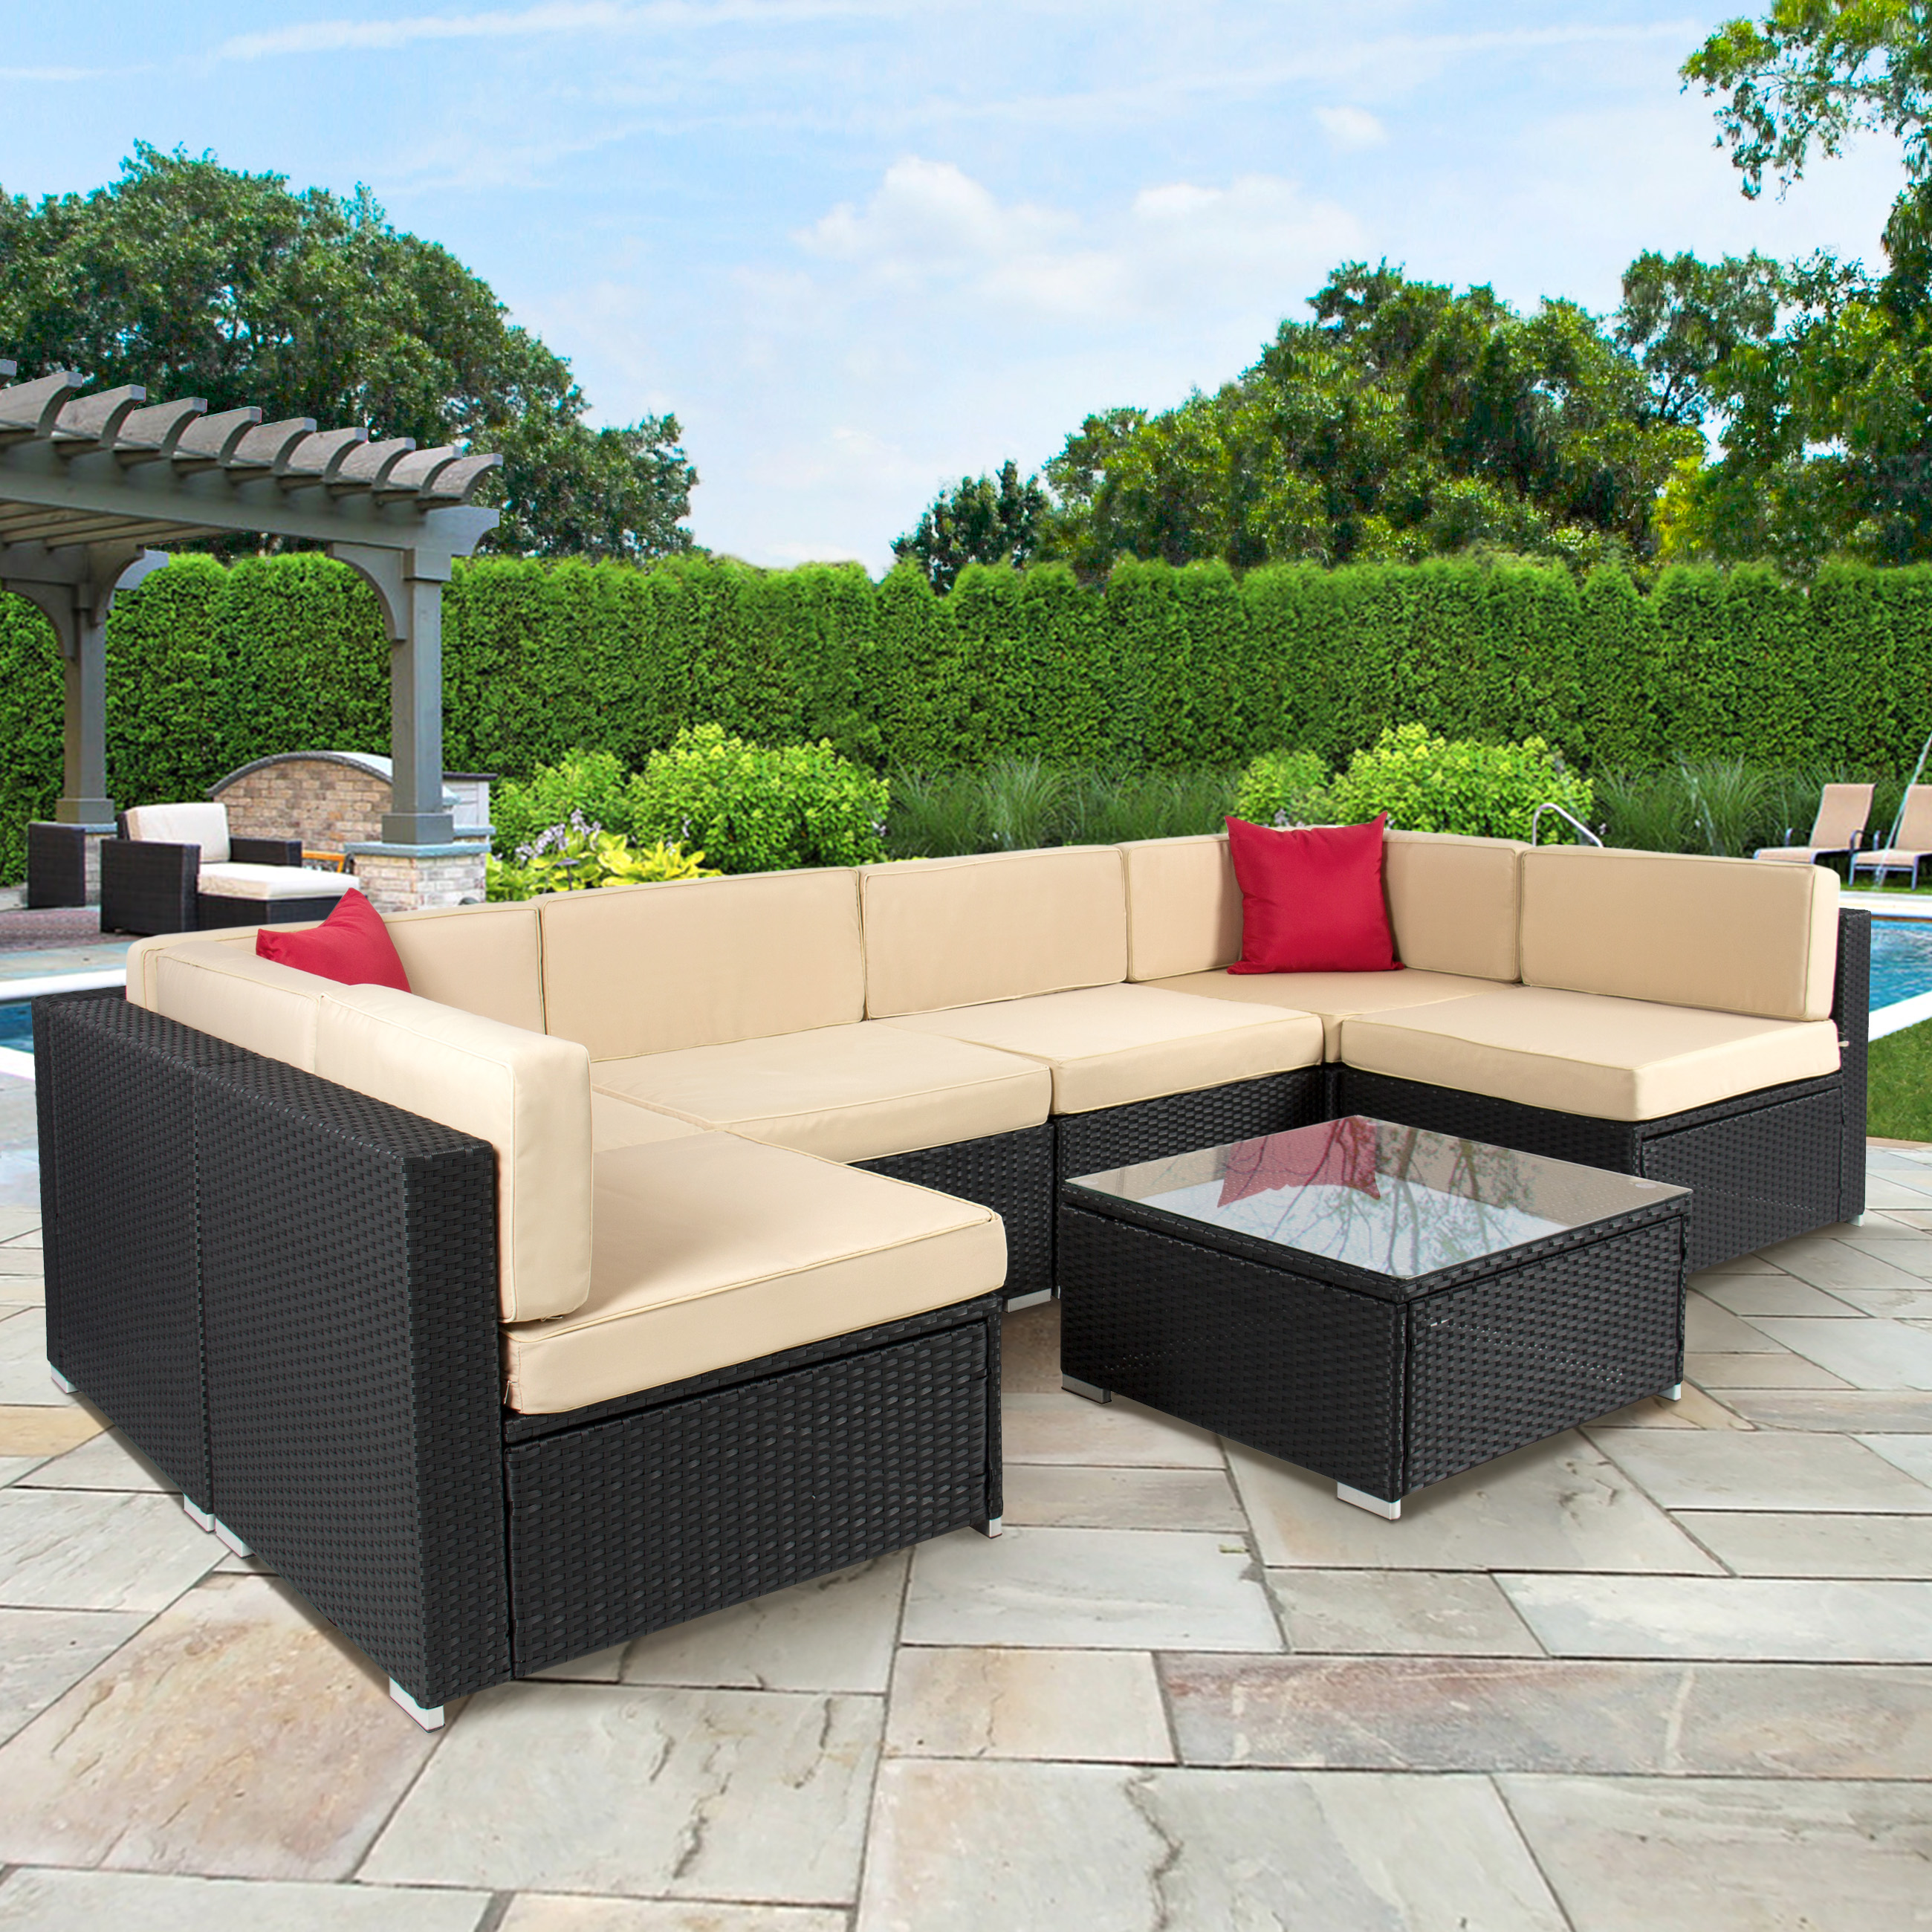 Durable outside rattan garden furniture